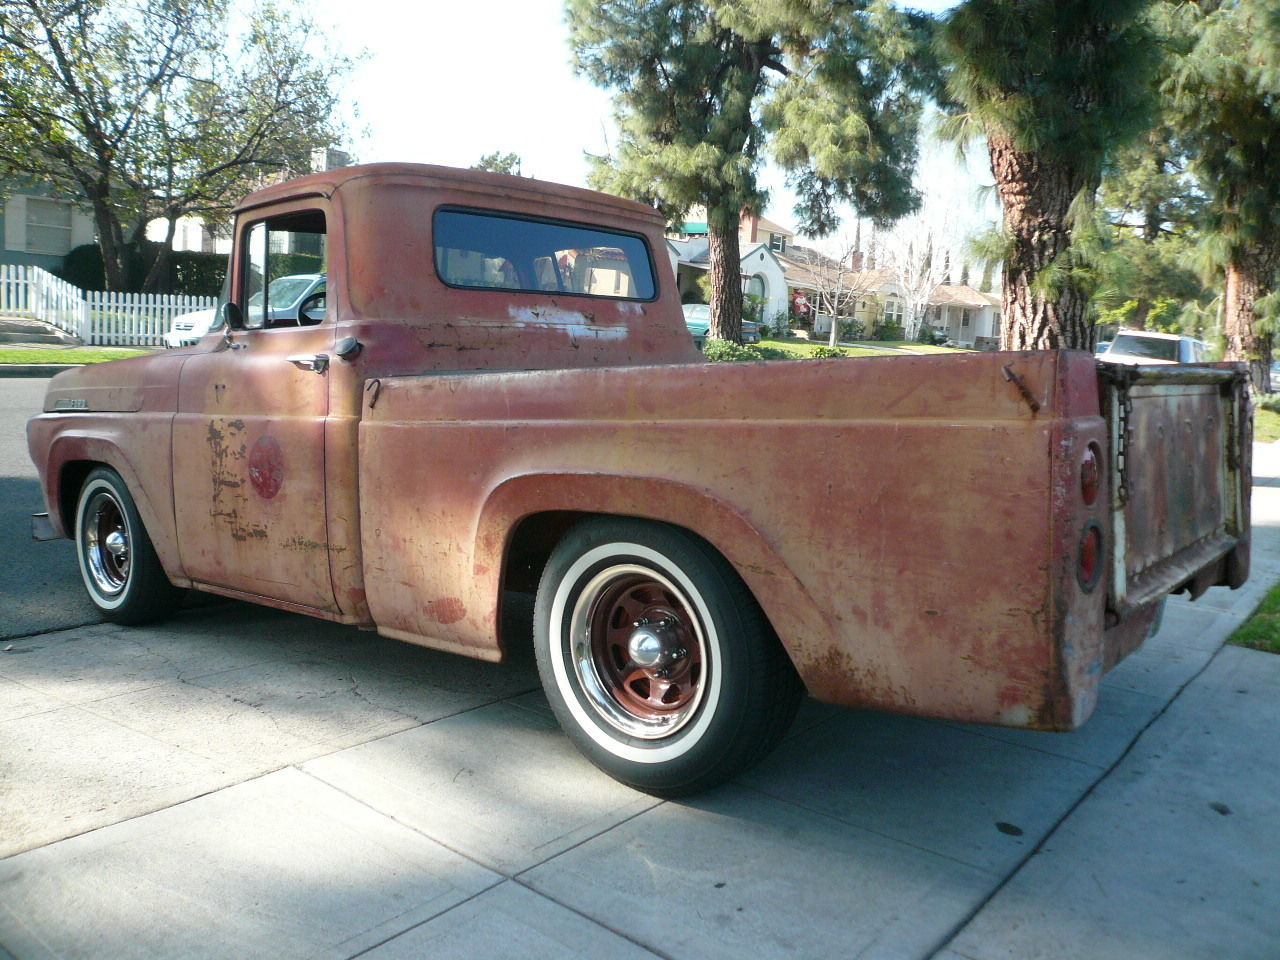 1957 Ford F 100 Short Bed 223 Inline 6 3 Speed Manual Shop Rat Rod 1955 F100 Sun Visor Head Turner Classic For Sale